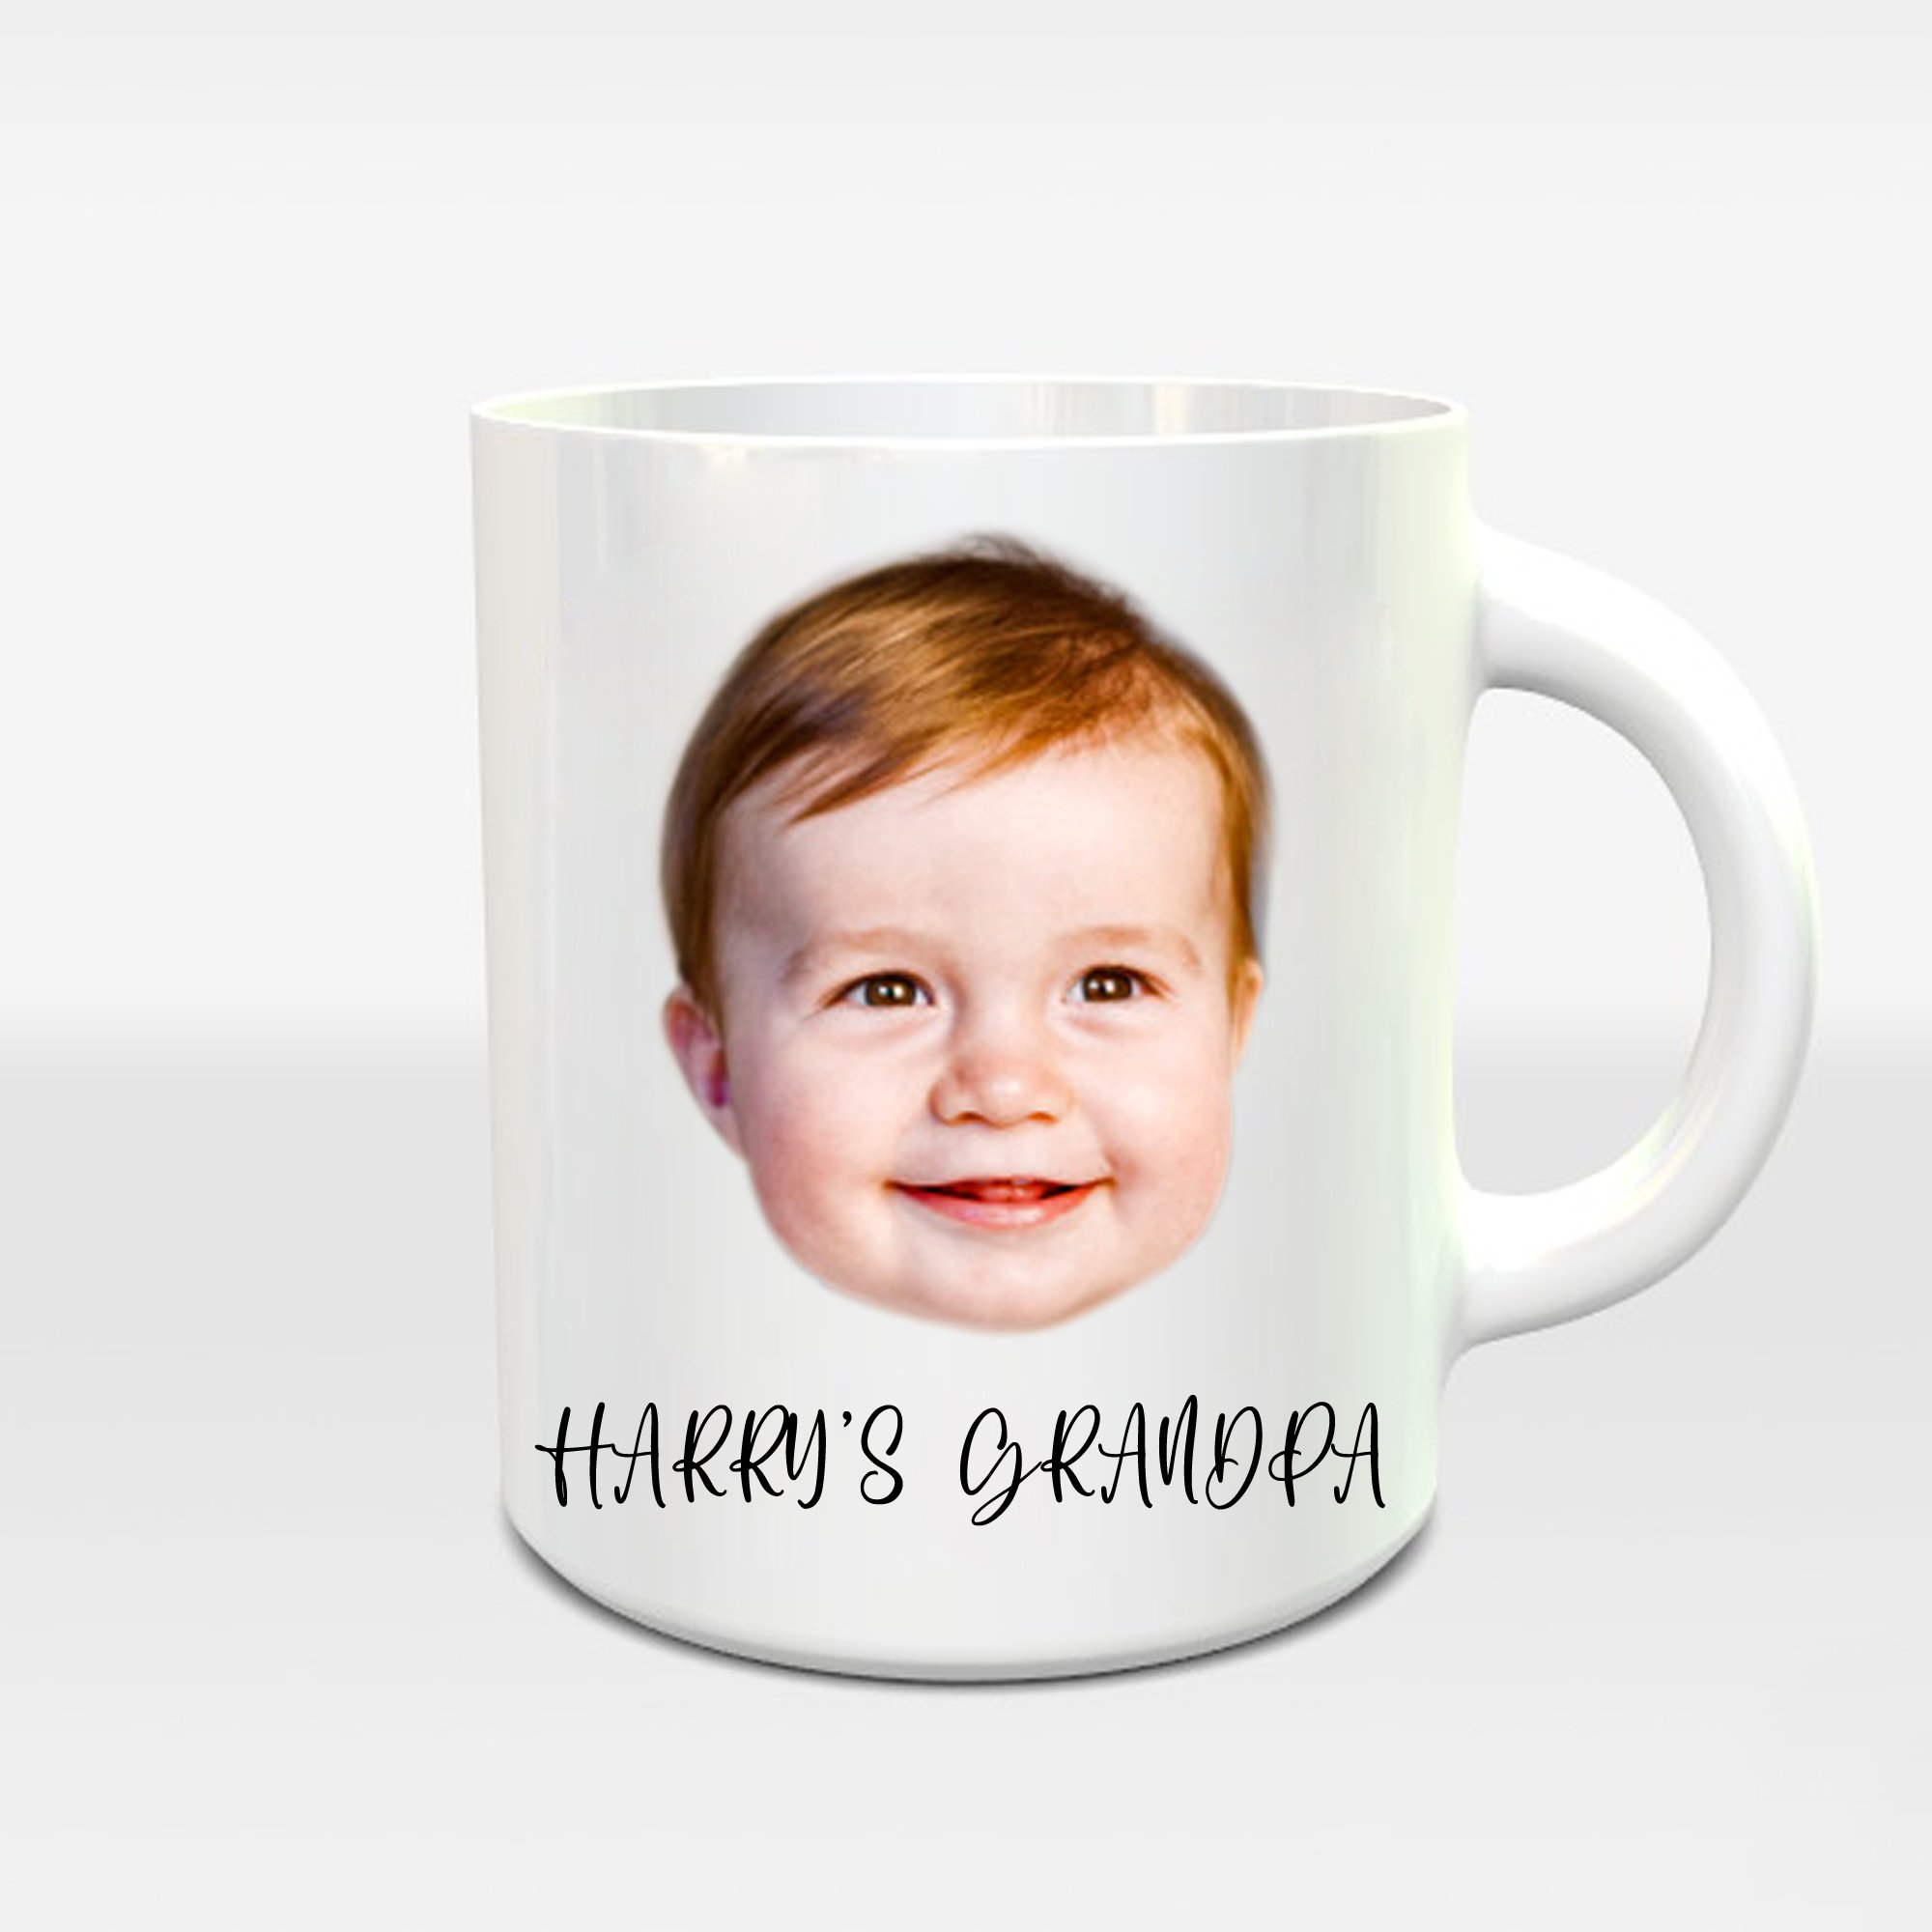 Baby Face and Text Mug, Baby Gift Coffee Cup, Mug Personalised Xmas Gift for GrandFather, Custom Birthday Gift for GrandPa - Littleaarchi